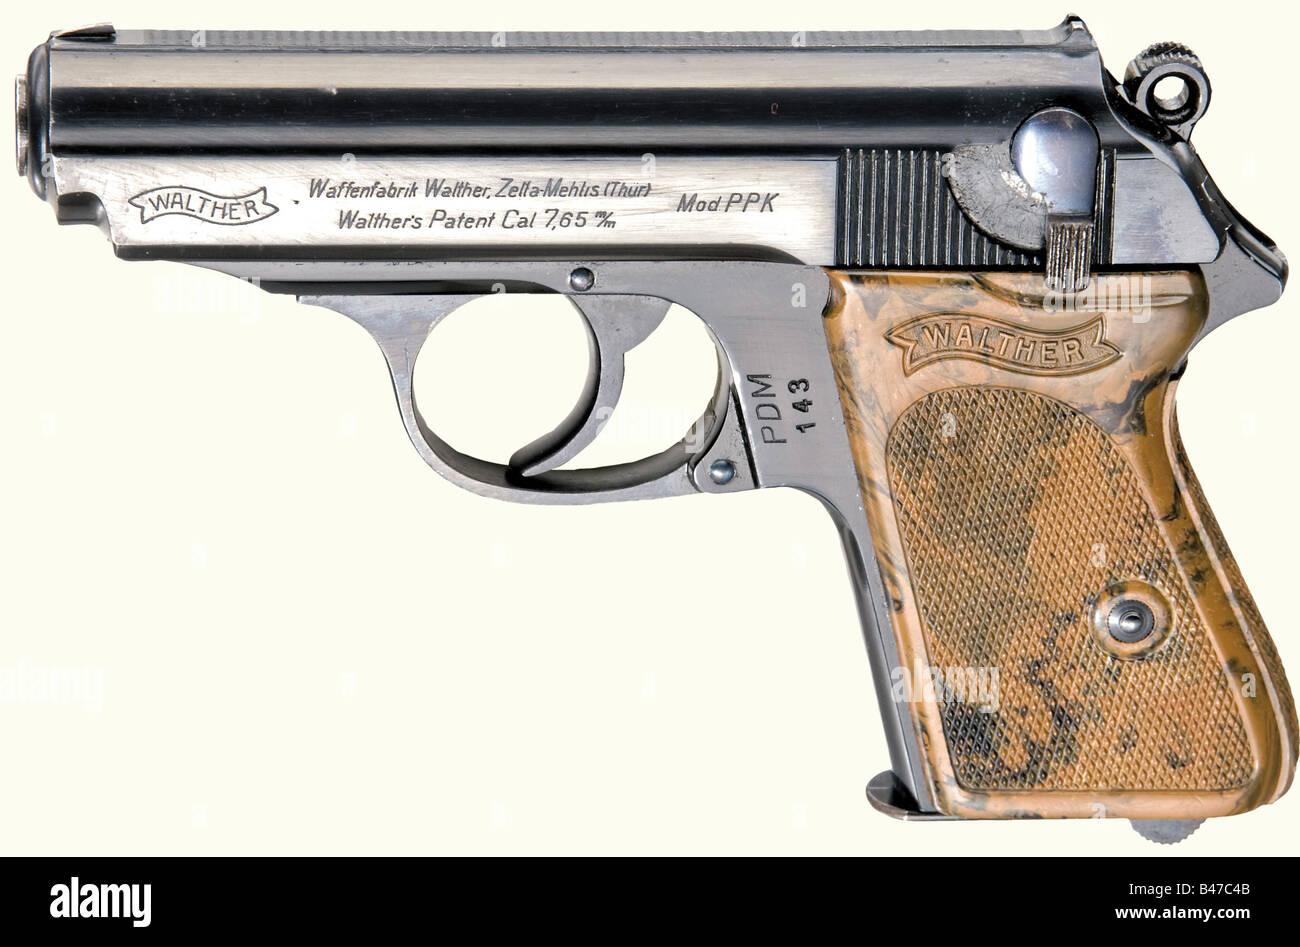 A Walther Ppk Zm Stock Photos & A Walther Ppk Zm Stock Images - Alamy